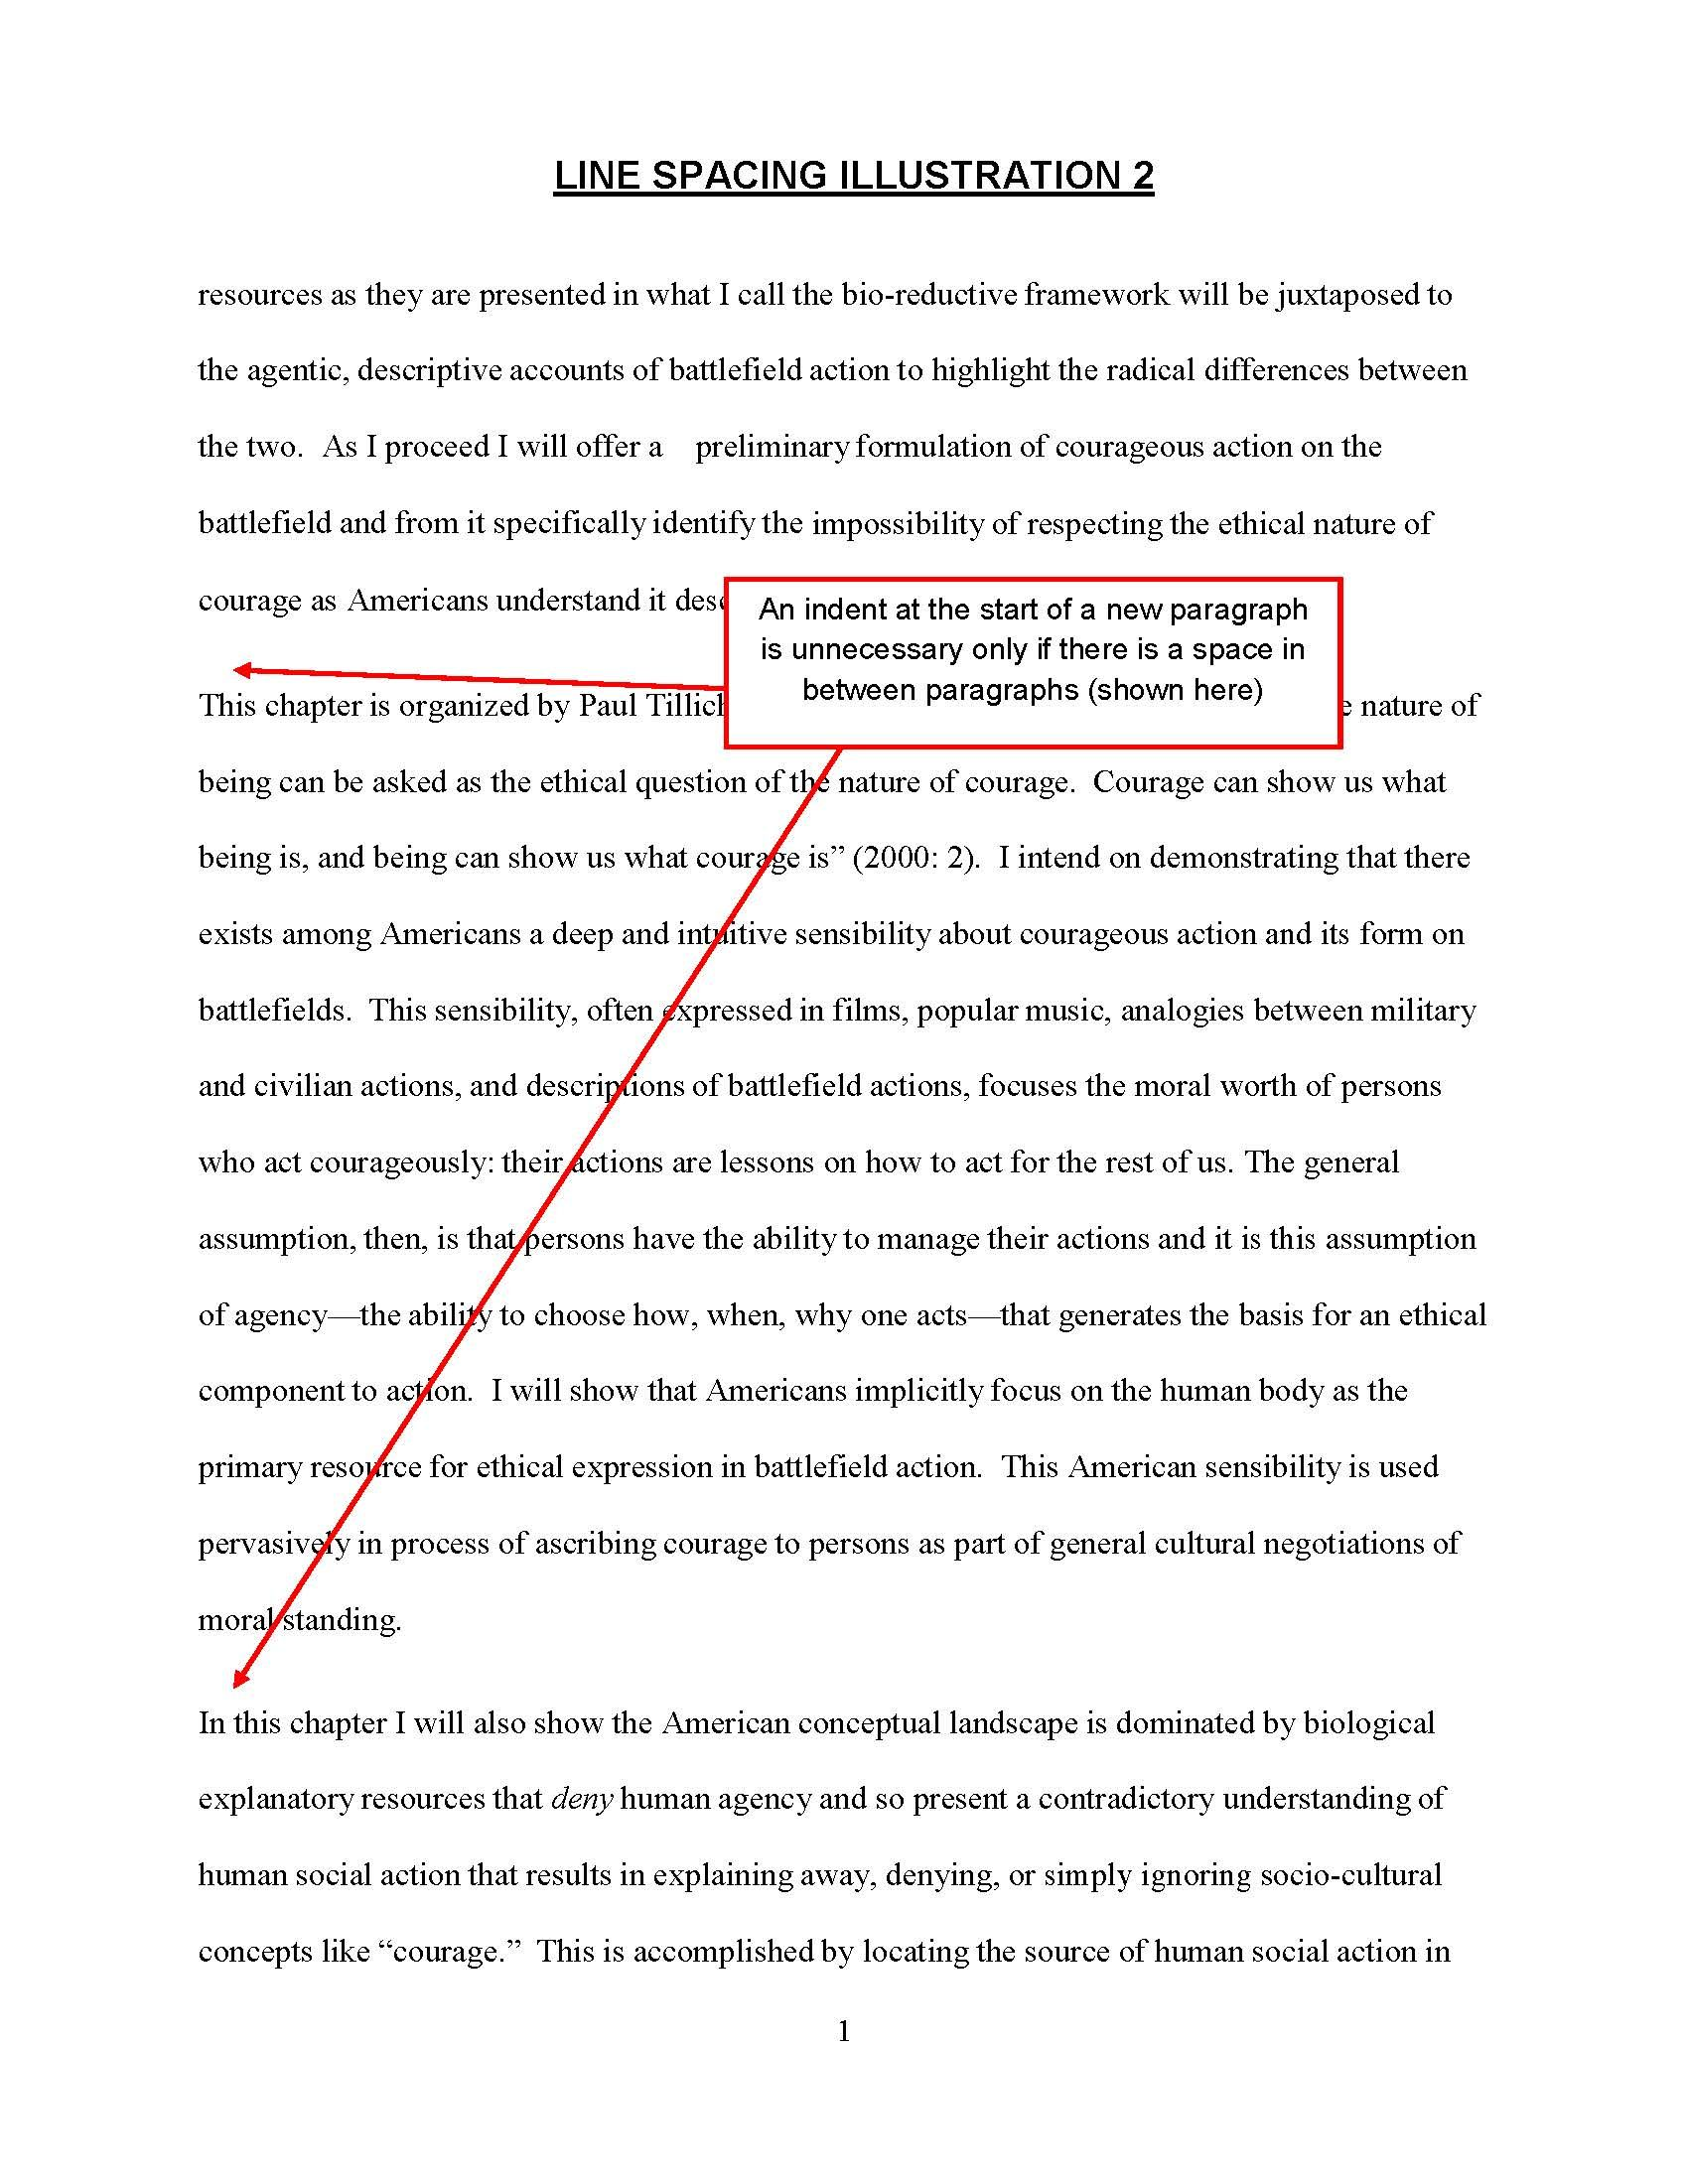 Full Size of Double Spaced Essay Example